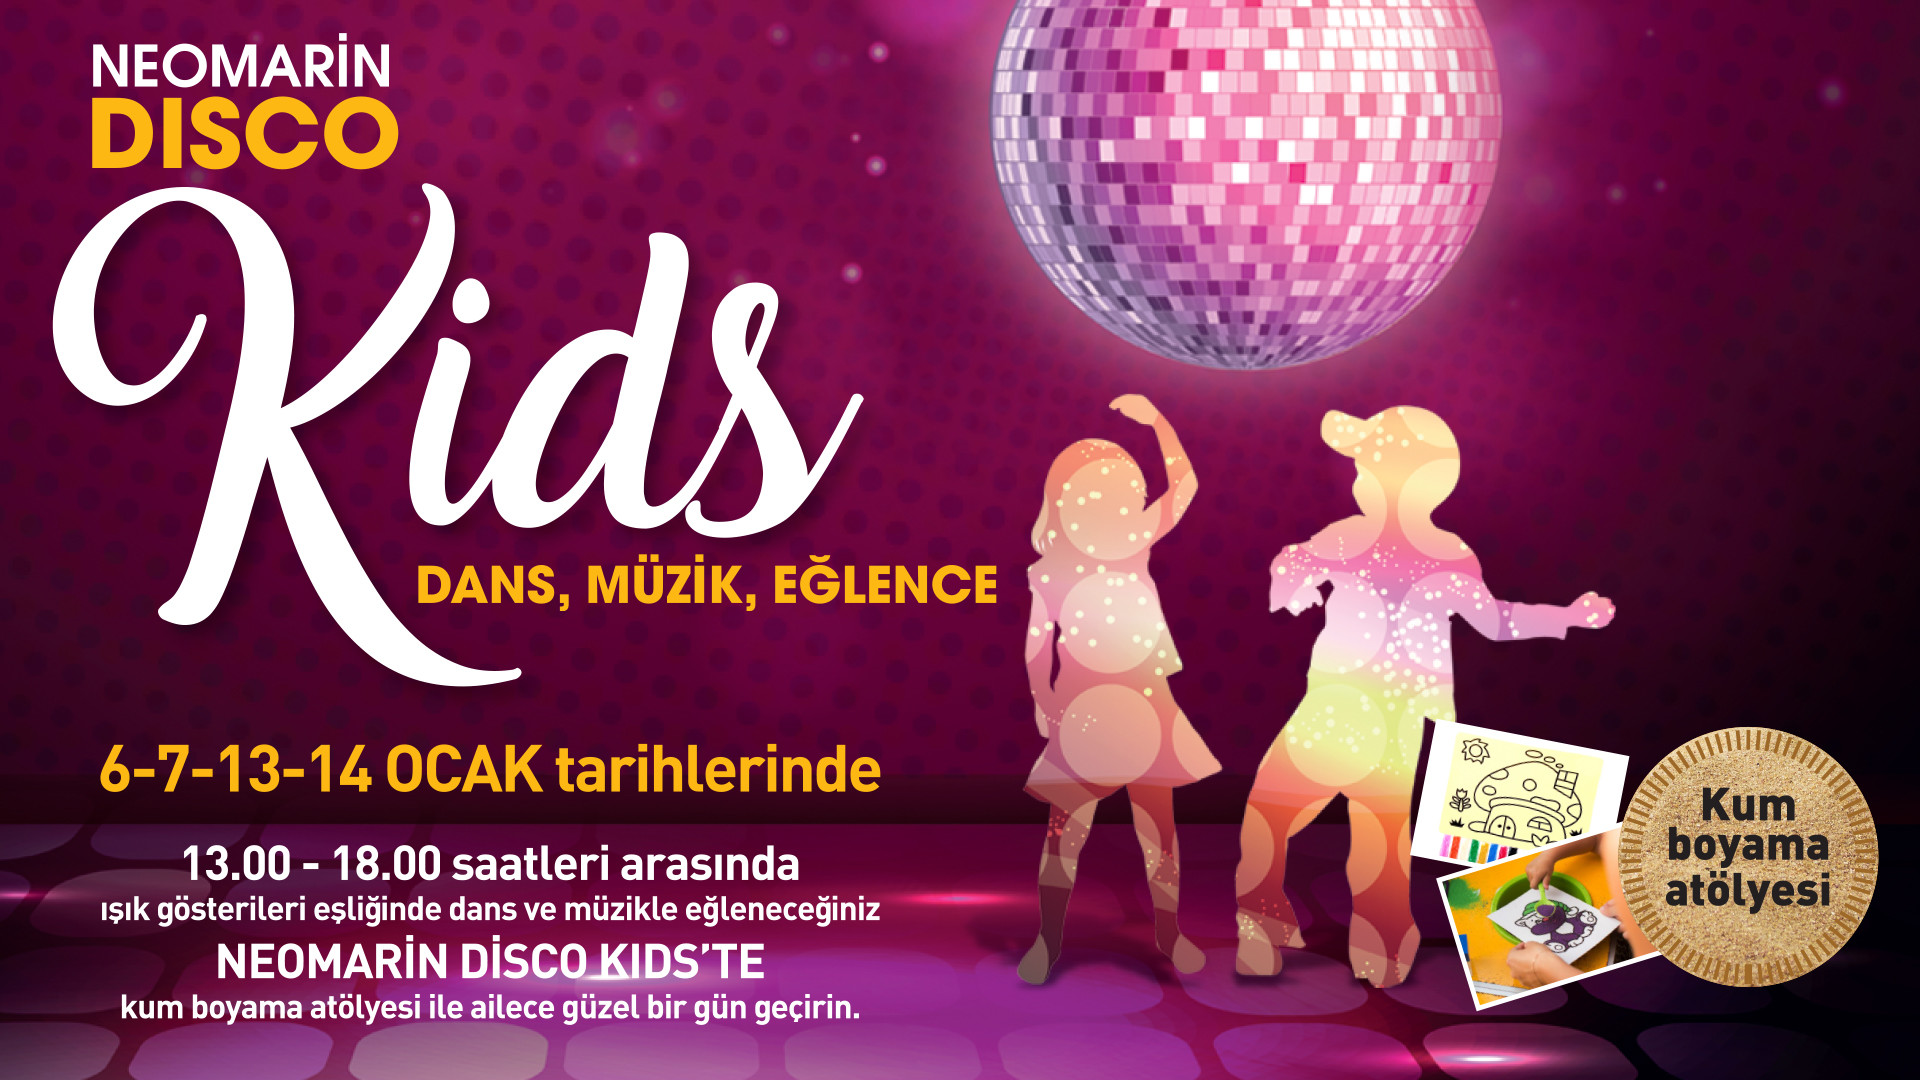 Neomarin Disco Kids